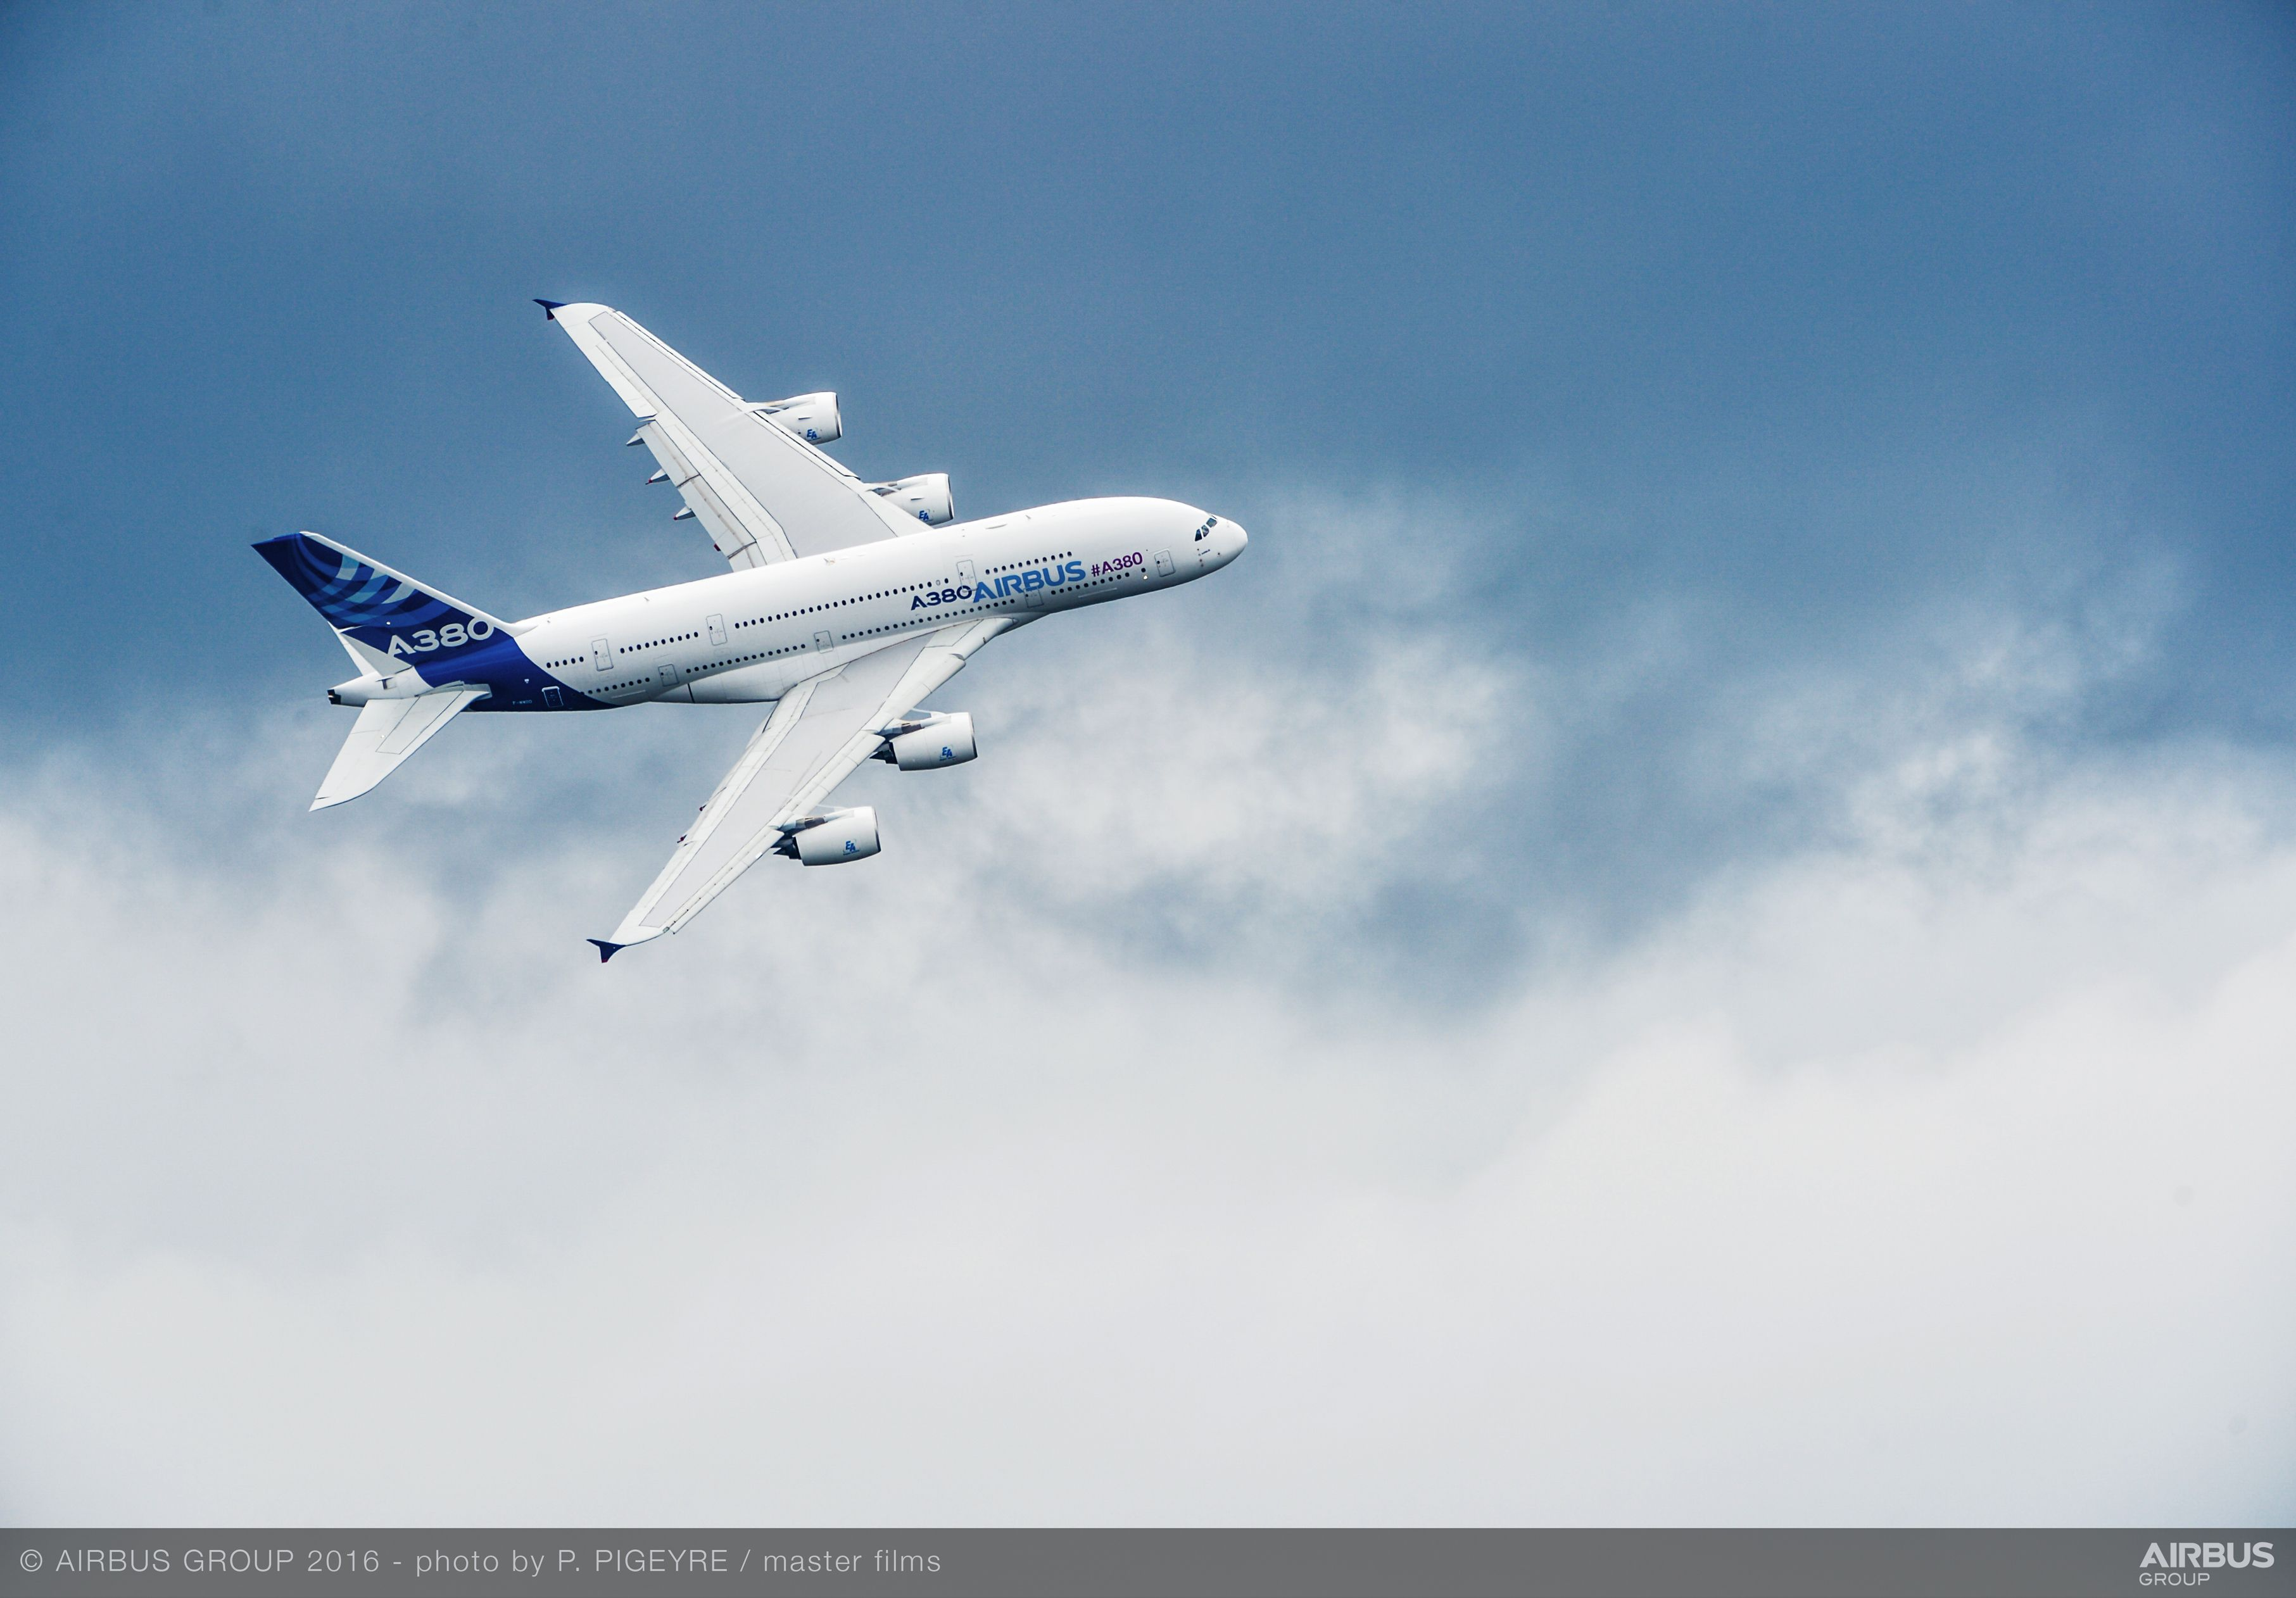 innovation strategy and entrepreneurship airbus a380 Emirates — 30 years of remarkable growth emirates growth strategy includes the airbus a380 superjumbo was formerly president of innovation analysis group.